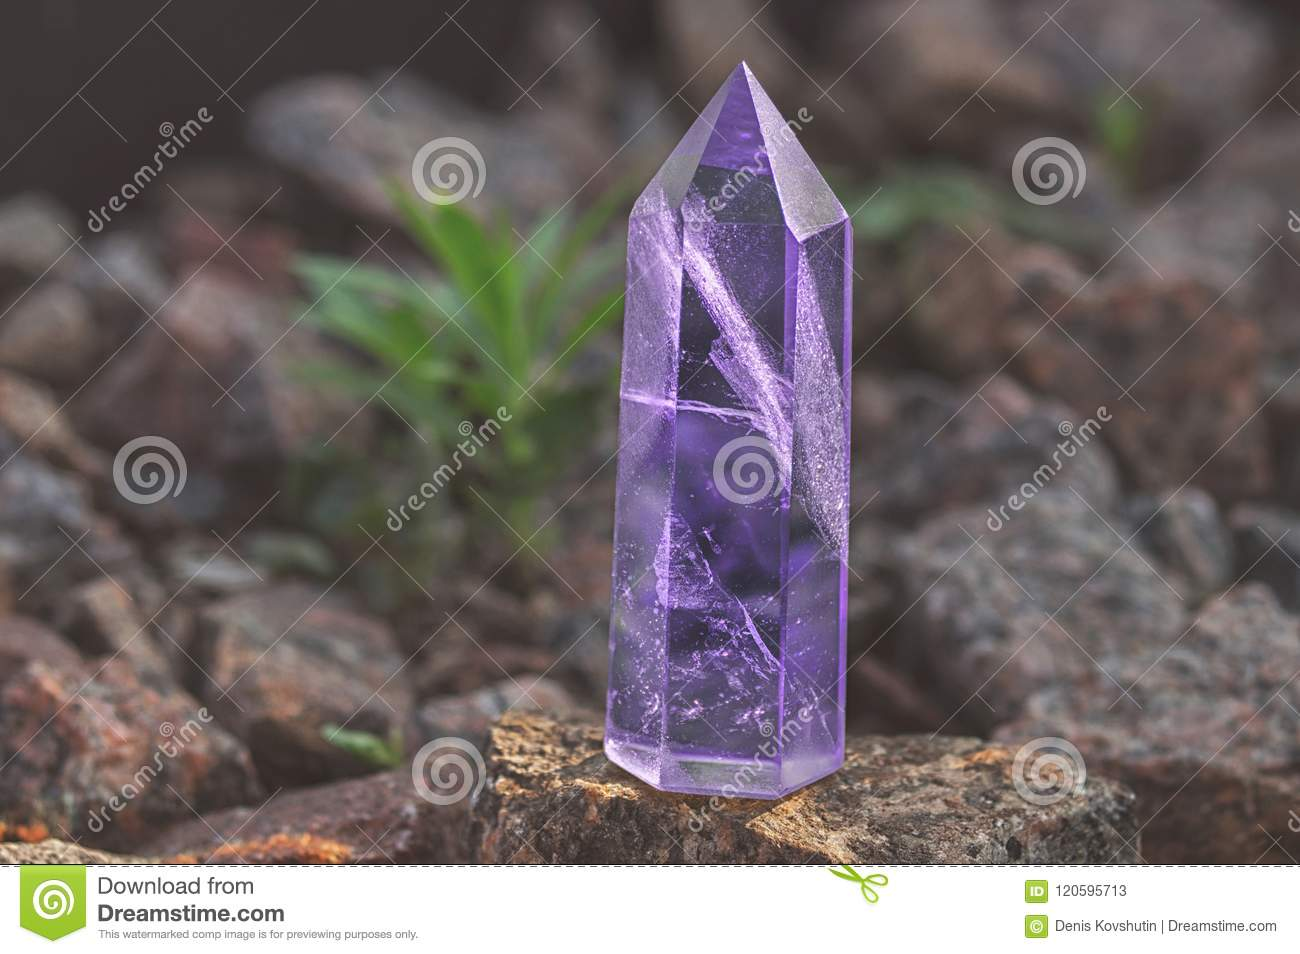 Large transparent mystical faceted crystal of colored lilac amethyst, chalcedony on a stone background close-up. Wonderful mineral